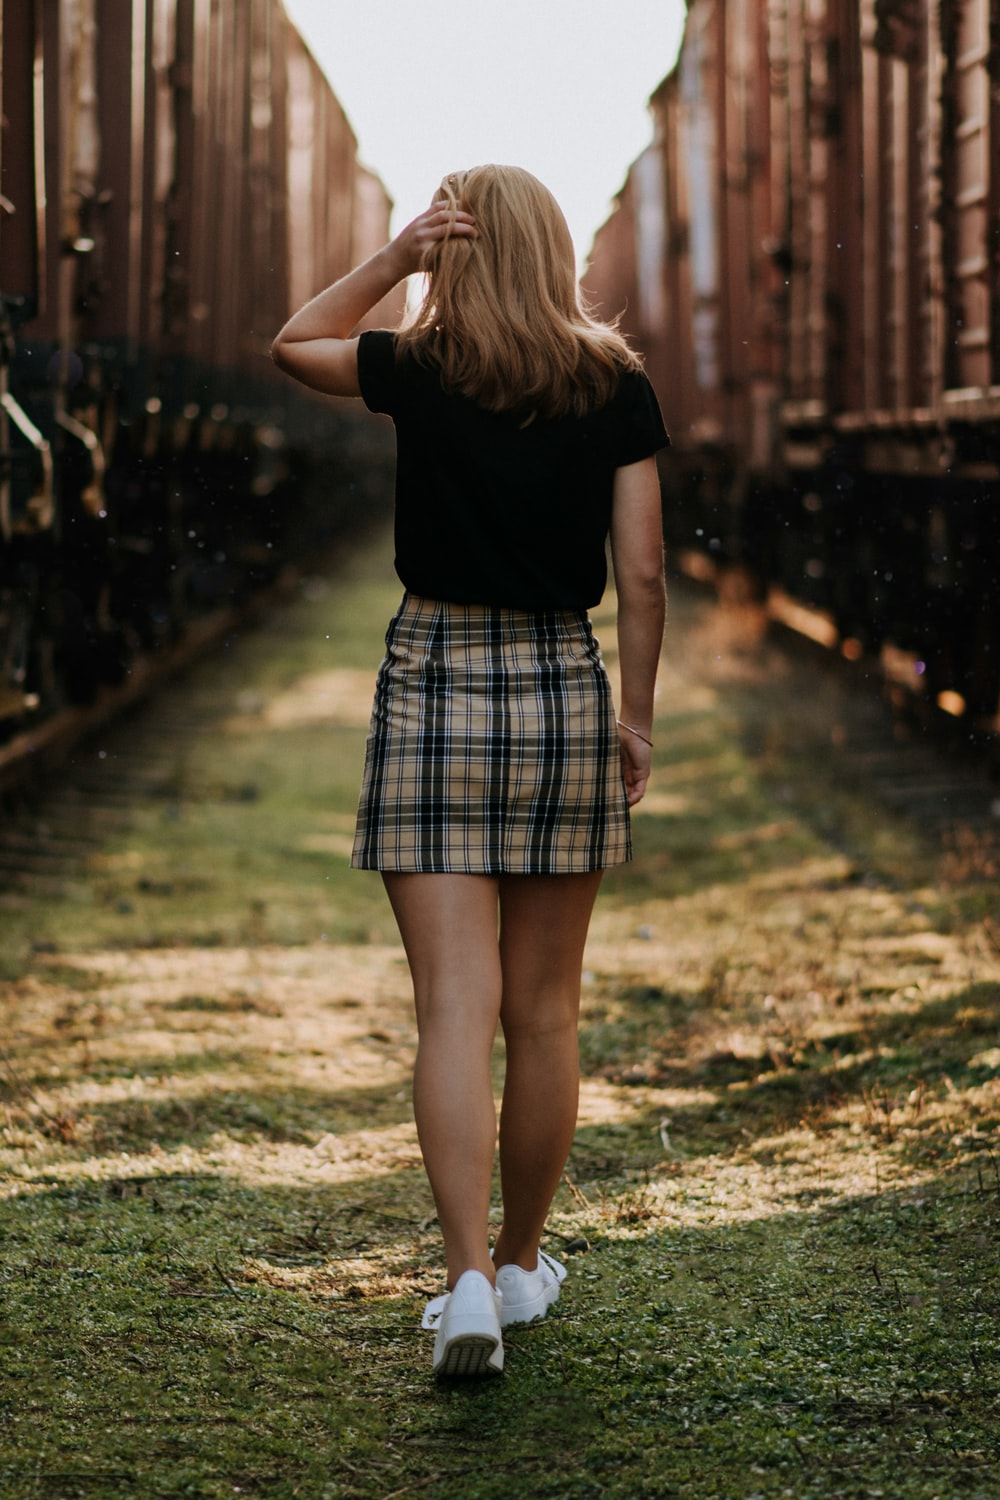 Girl with skirt image Girl In Skirt Pictures Download Free Images On Unsplash